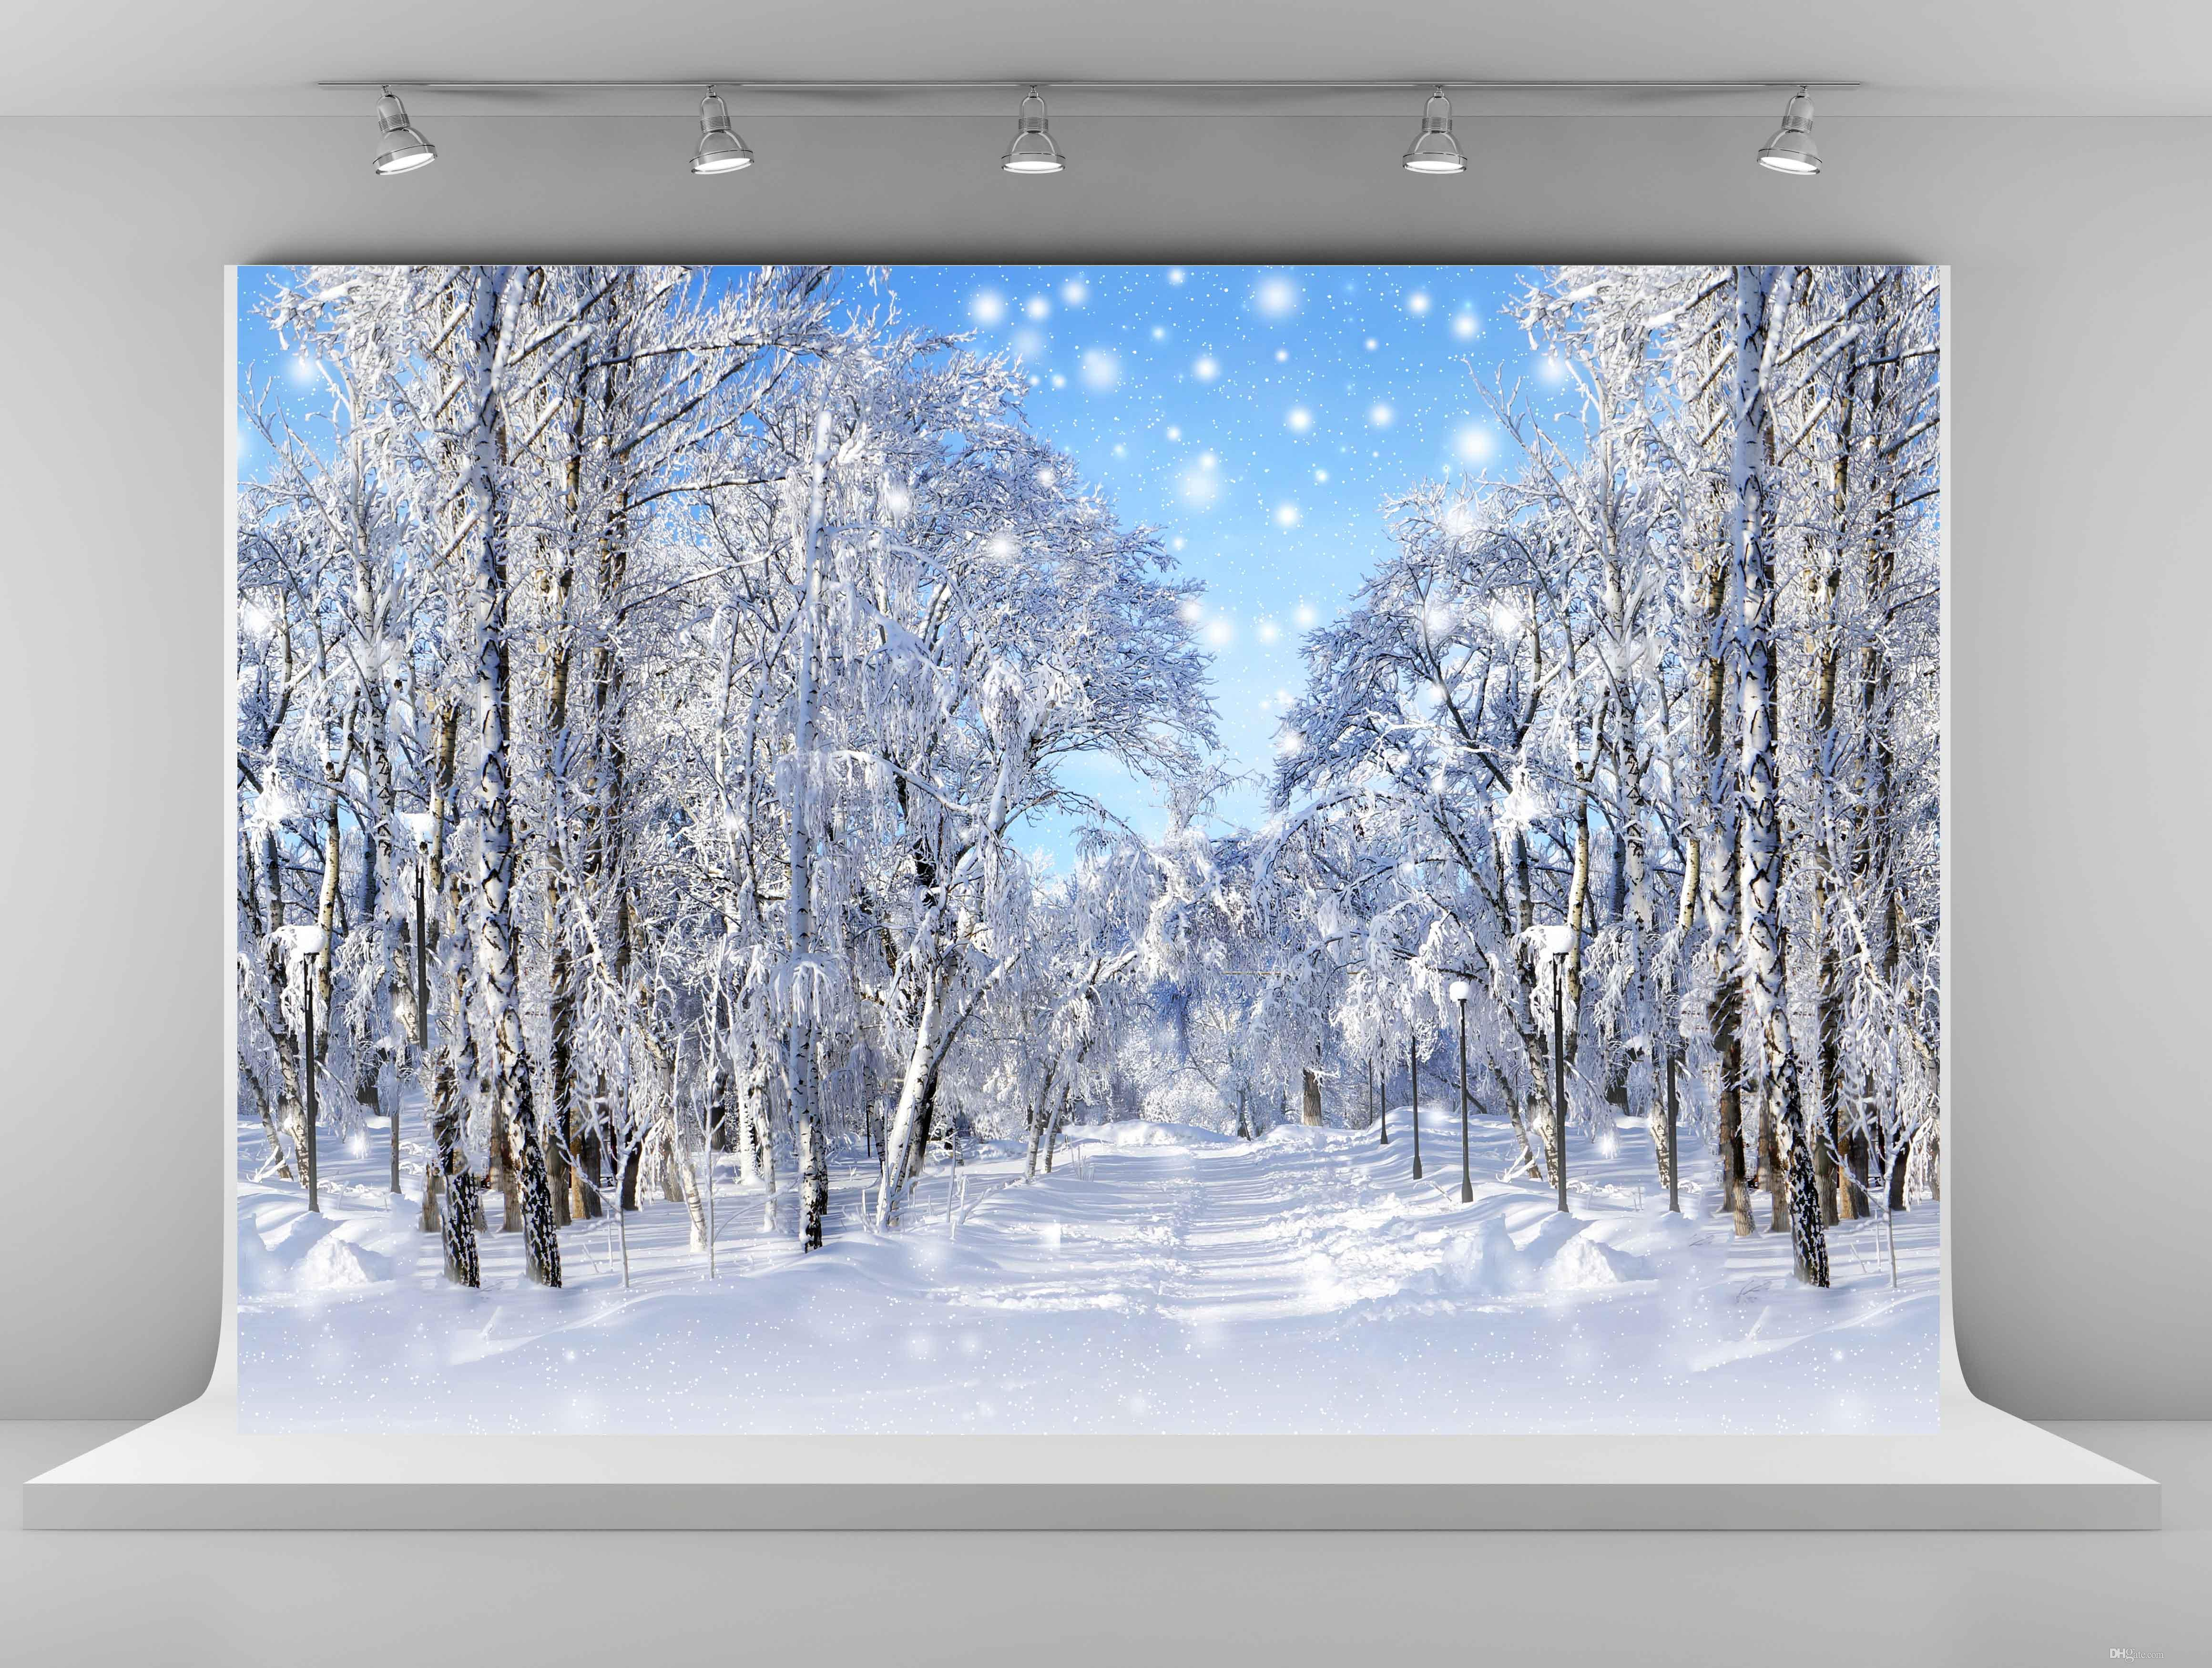 Winter photography backdrops frozen snow backgrounds for photo studio 7x5ft tree christmas backdrops shooting for wedding snowflake photo backdrops children